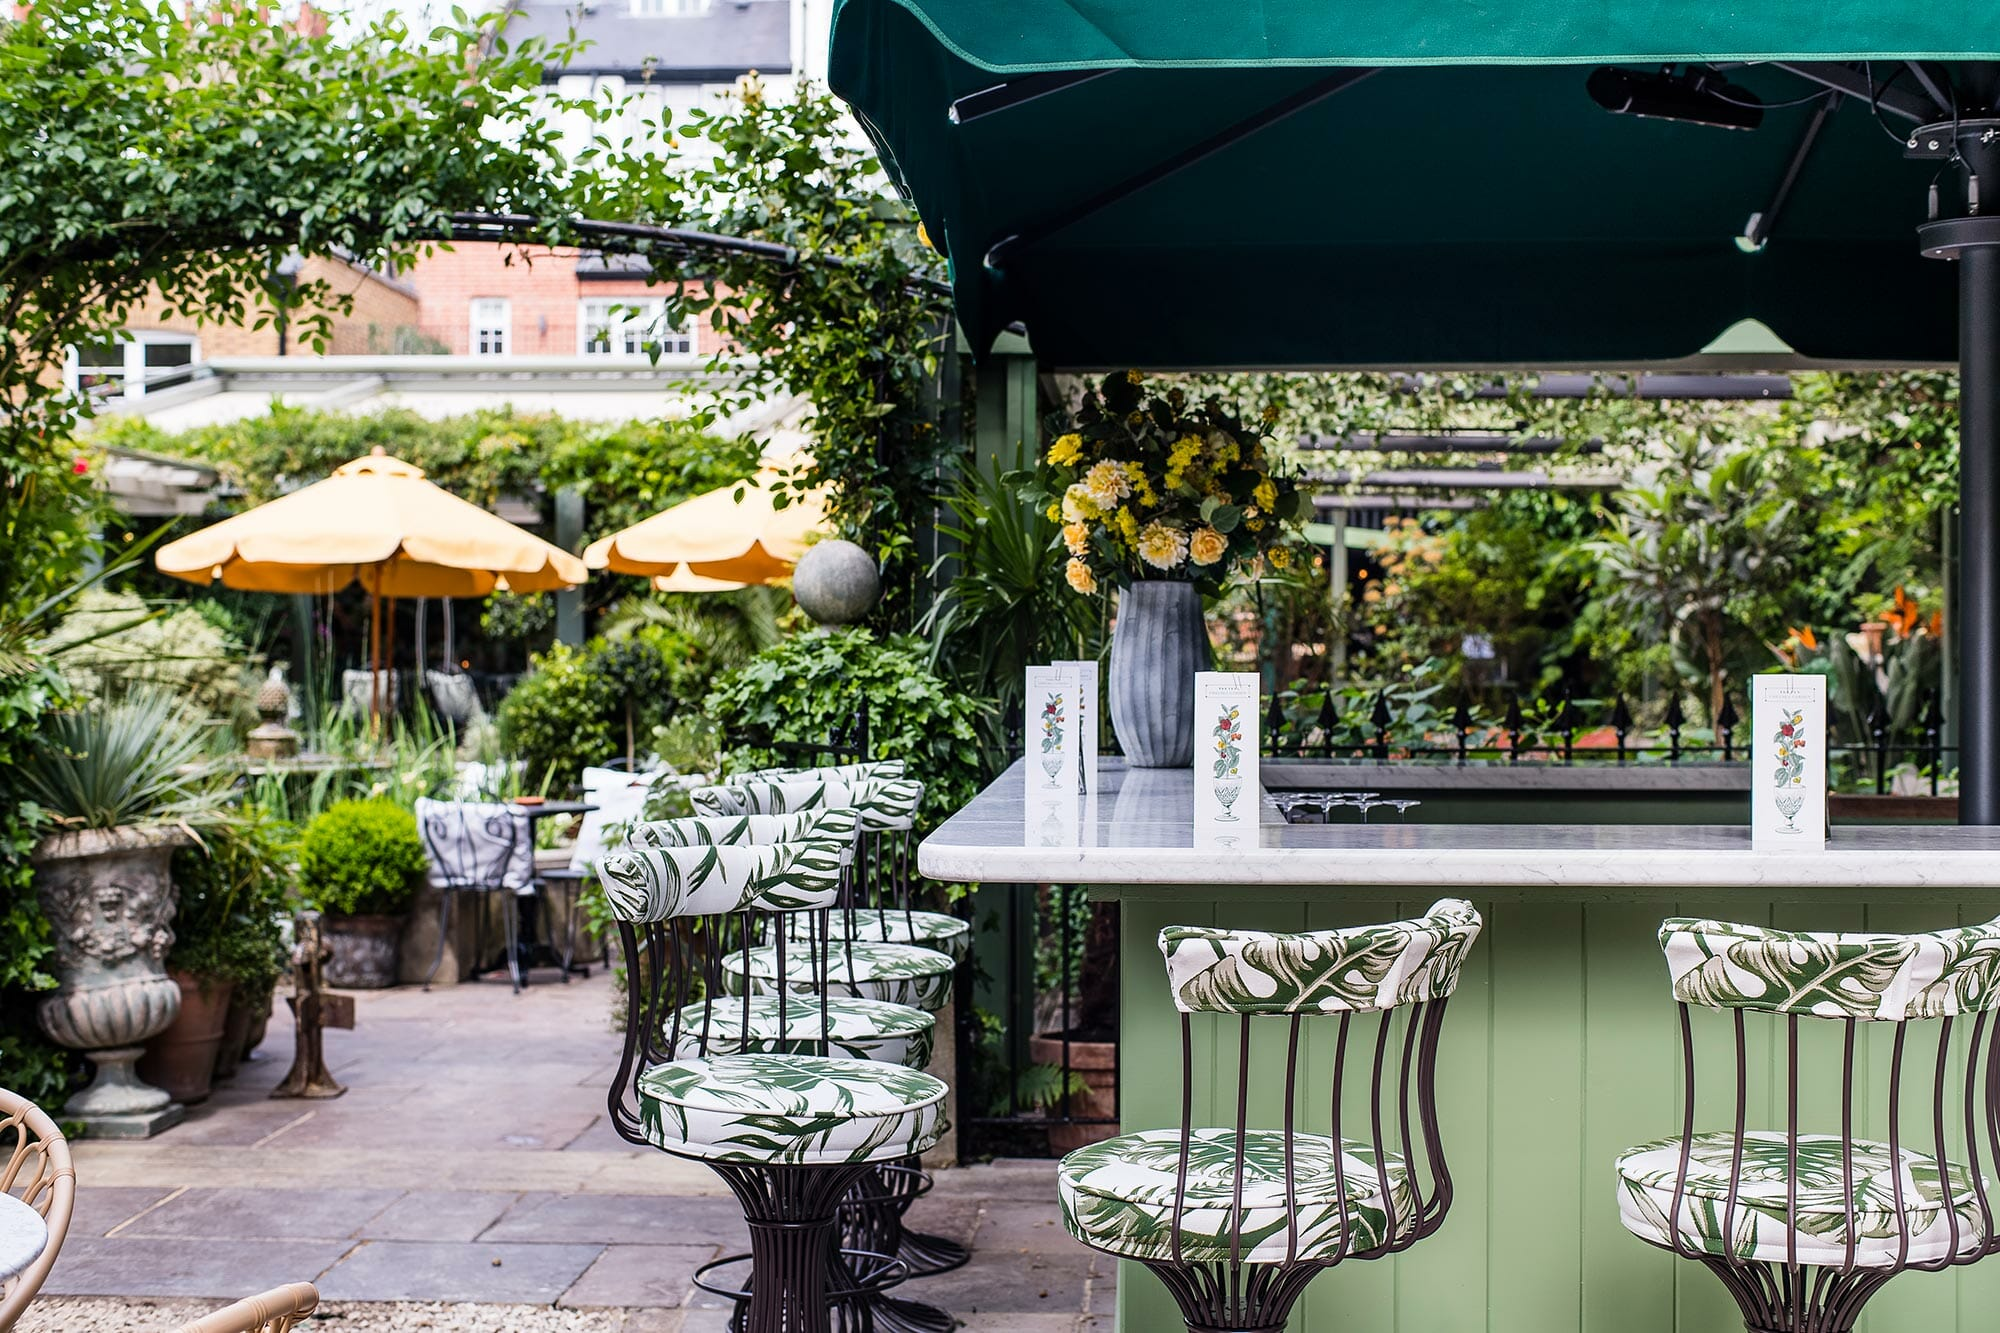 Ivy Chelsea Garden outdoor seating